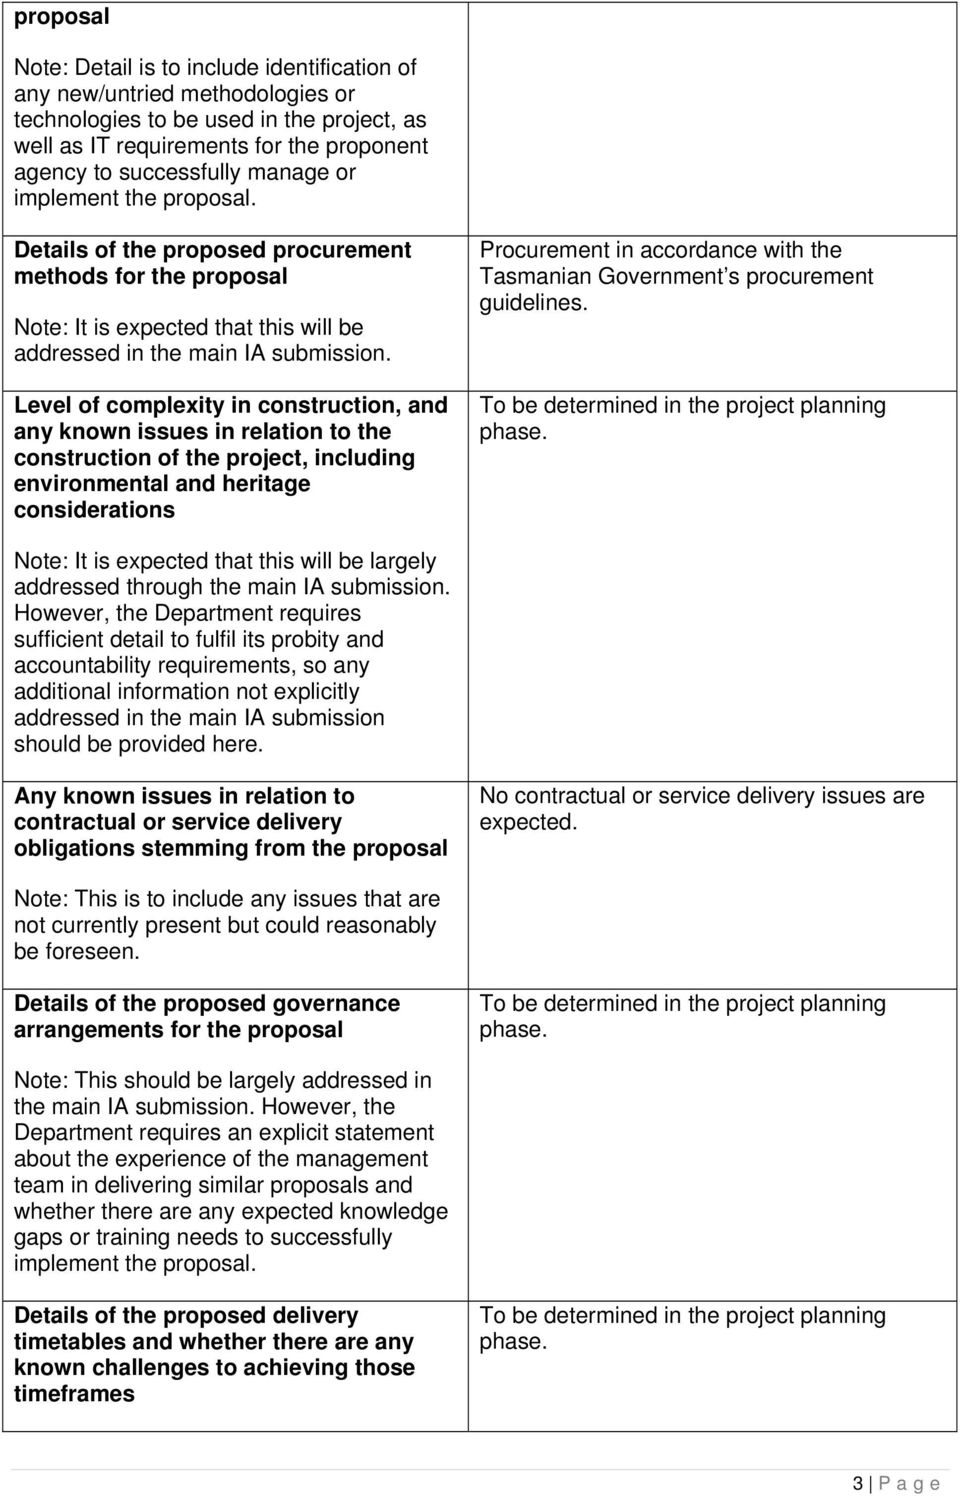 Details of the proposed procurement methods for the proposal Level of complexity in construction, and any known issues in relation to the construction of the project, including environmental and